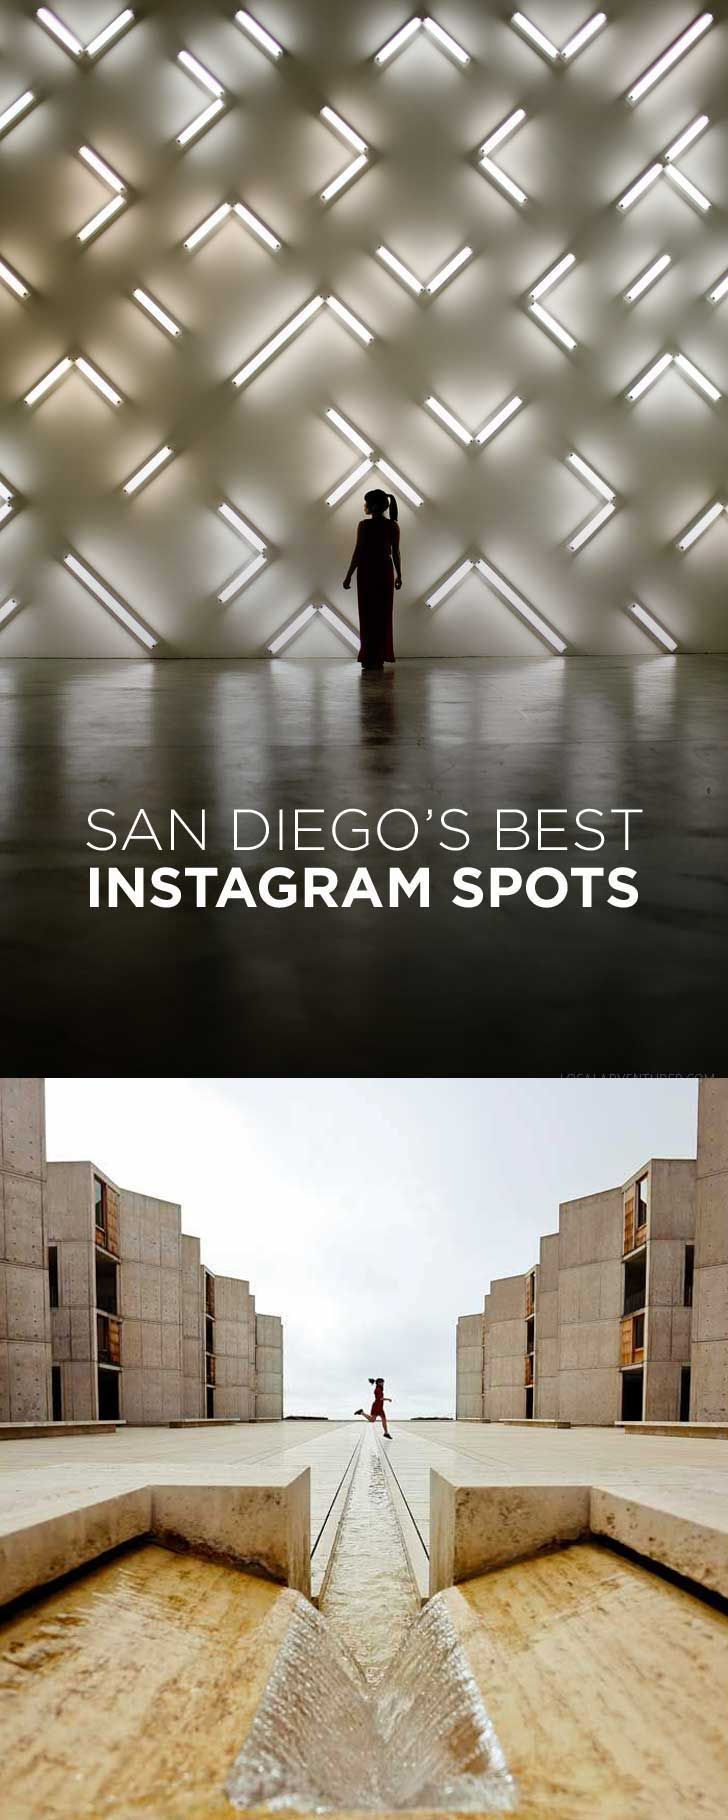 San diego dating spots